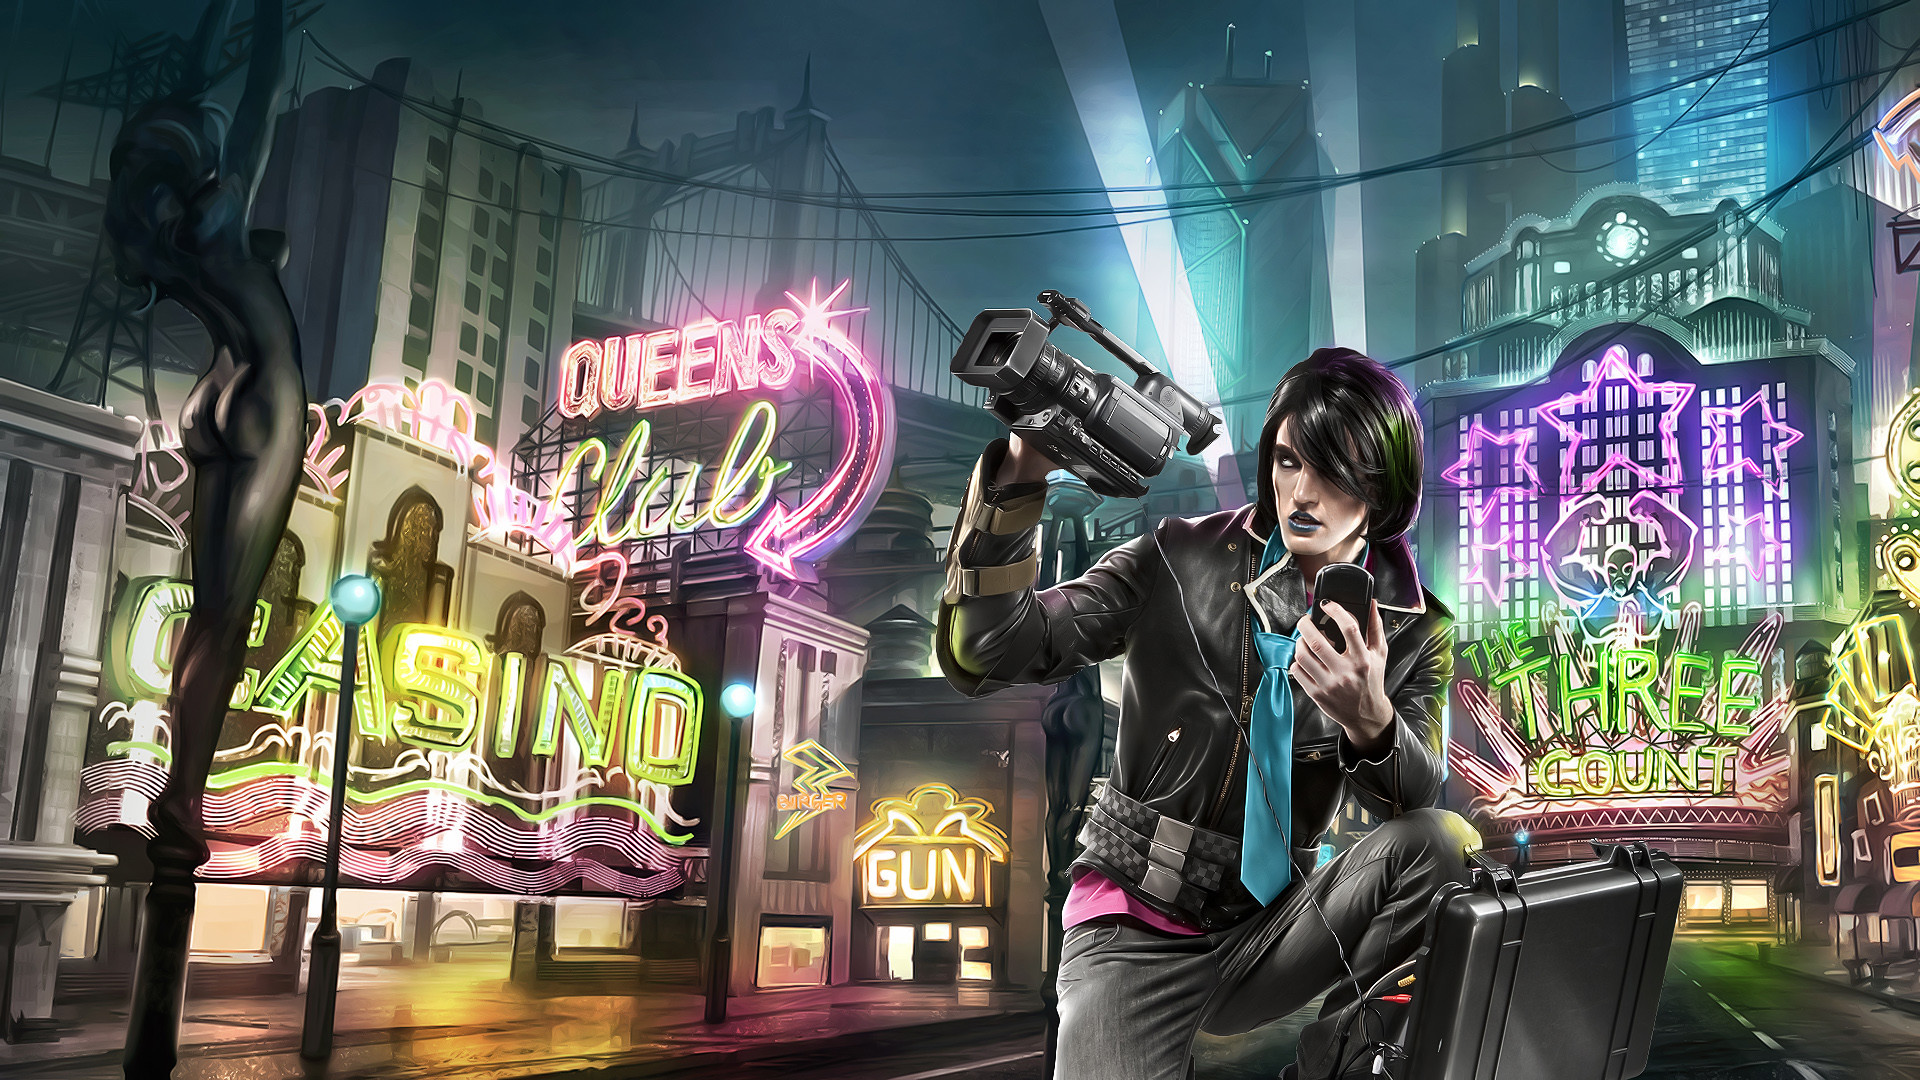 1920x1080 Video Game - Saints Row: The Third Wallpaper